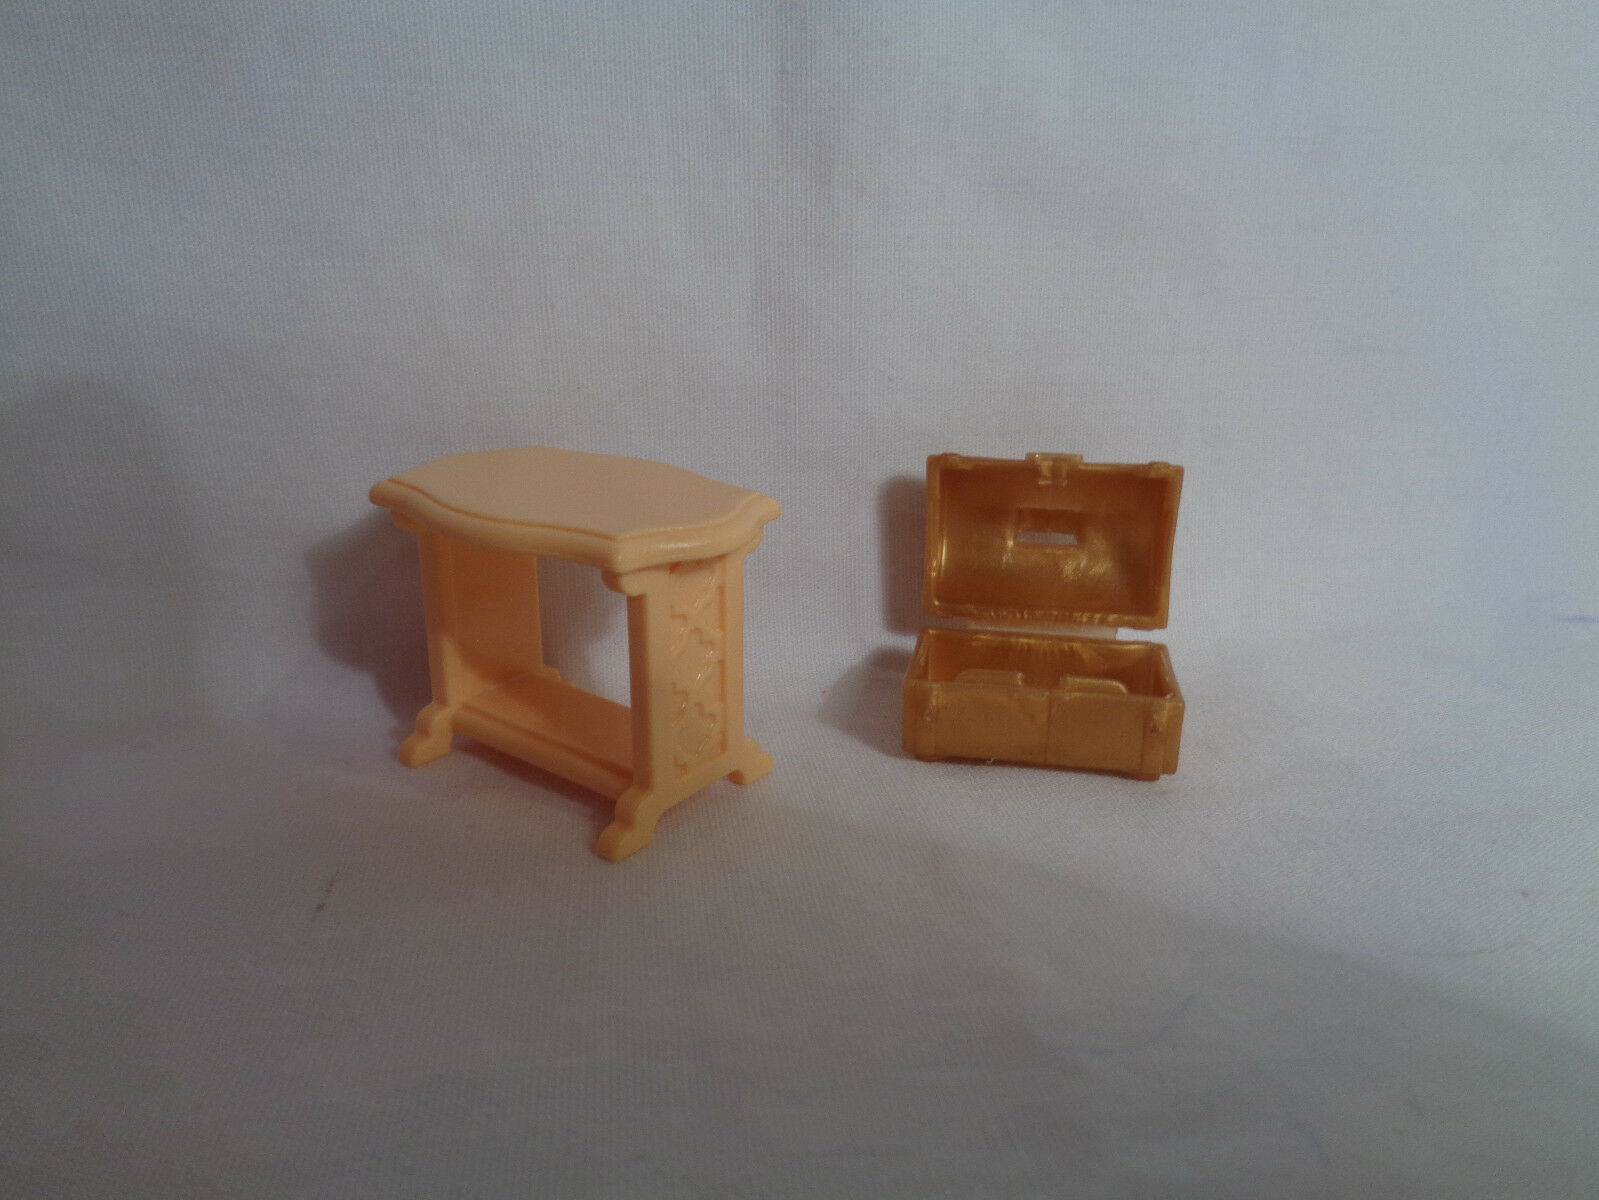 Playmobil Princess Castle Replacement Tan Accent Table & Small Chest image 3